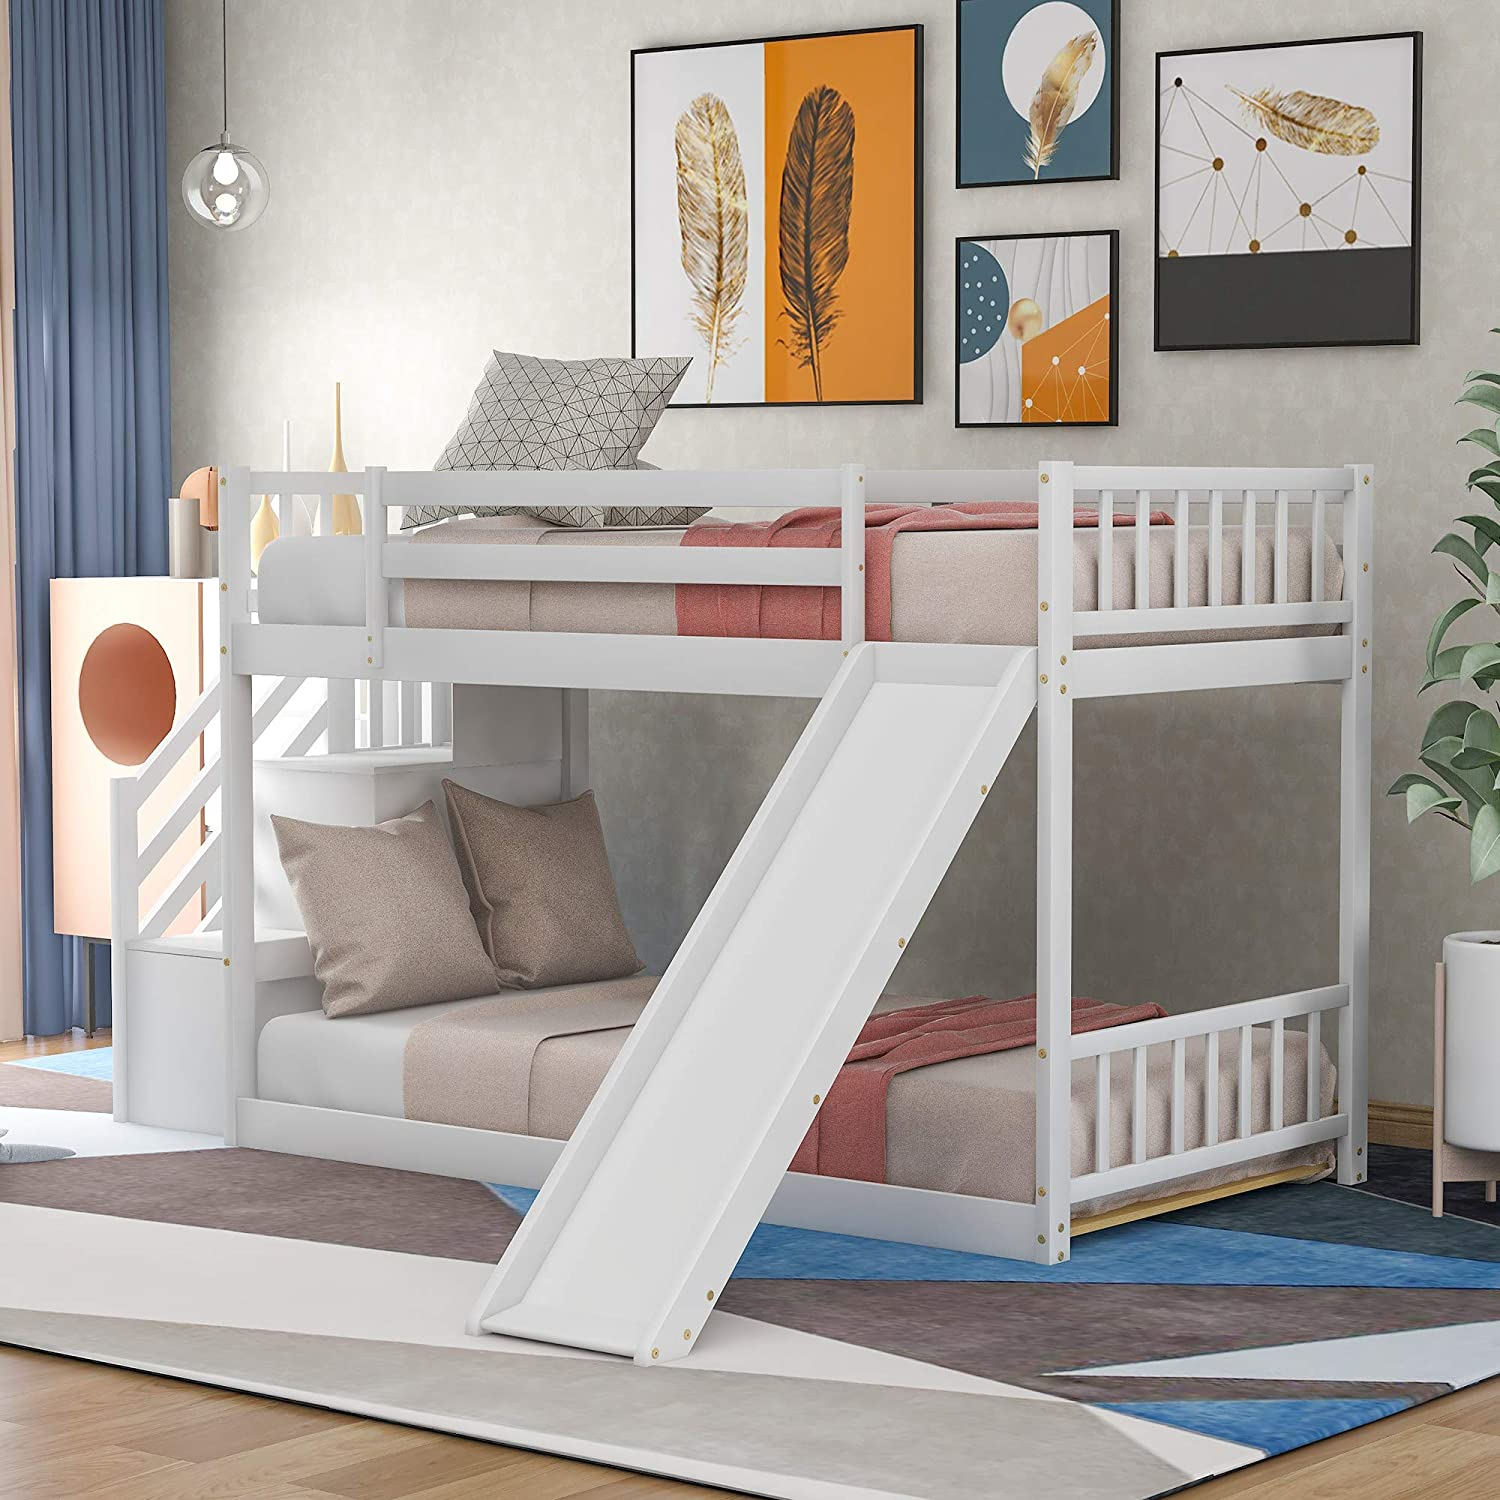 Solid Wood Low Bunk Bed for Kids, Twin Over Twin Floor Bunk Bed with Slide and Stair, Stairway with Storage Shelves/Handrail, Space-Saving Bedroom Dormitory Furniture (White)